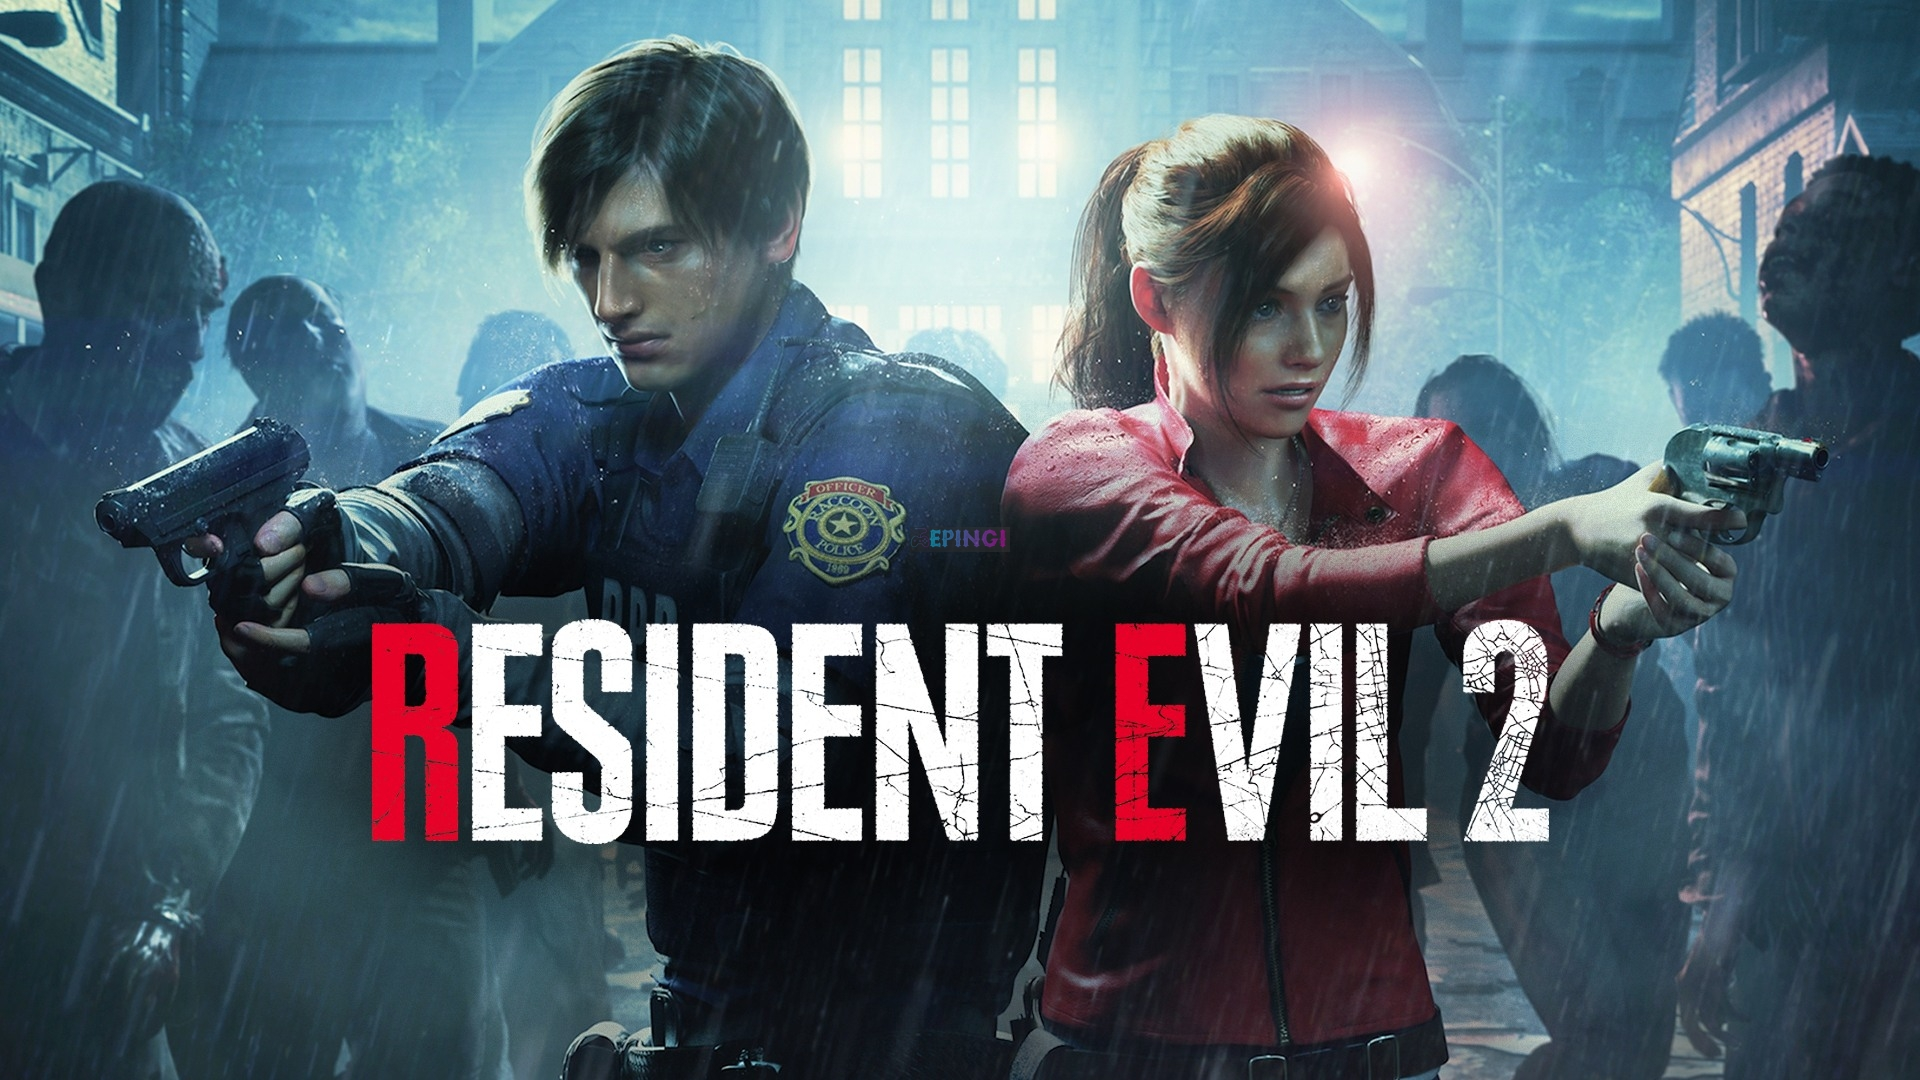 Resident Evil 2 Apk iOS Latest Version Free Download